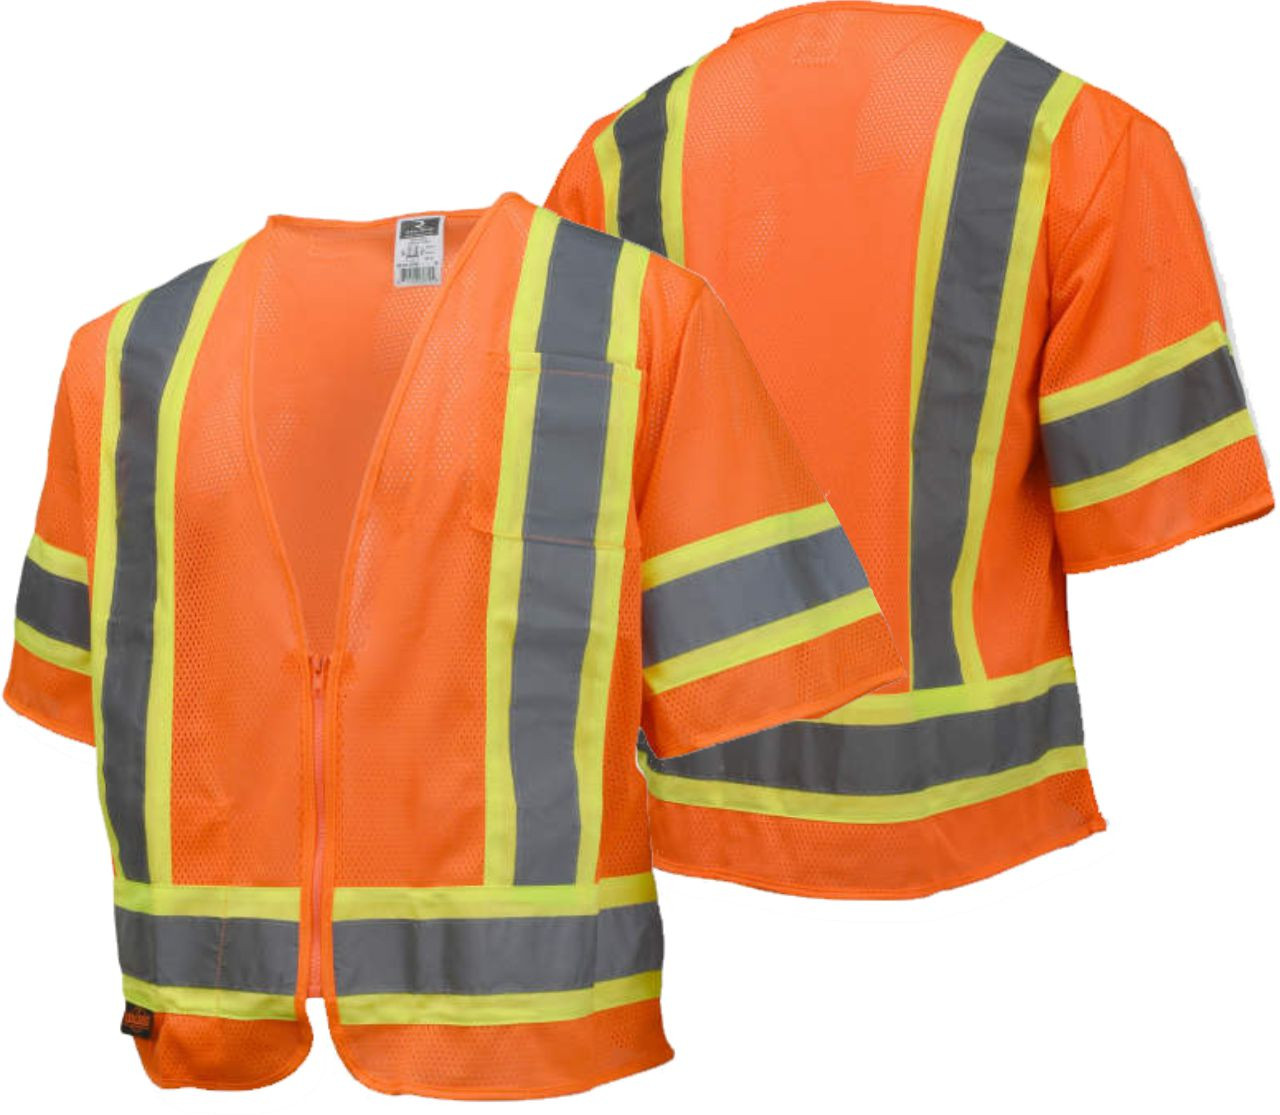 Radians SV22-3 Economy Type R Class 3 Safety Vest with Two-Tone Trim Safety Orange Vest with Safety Safety Green Trim